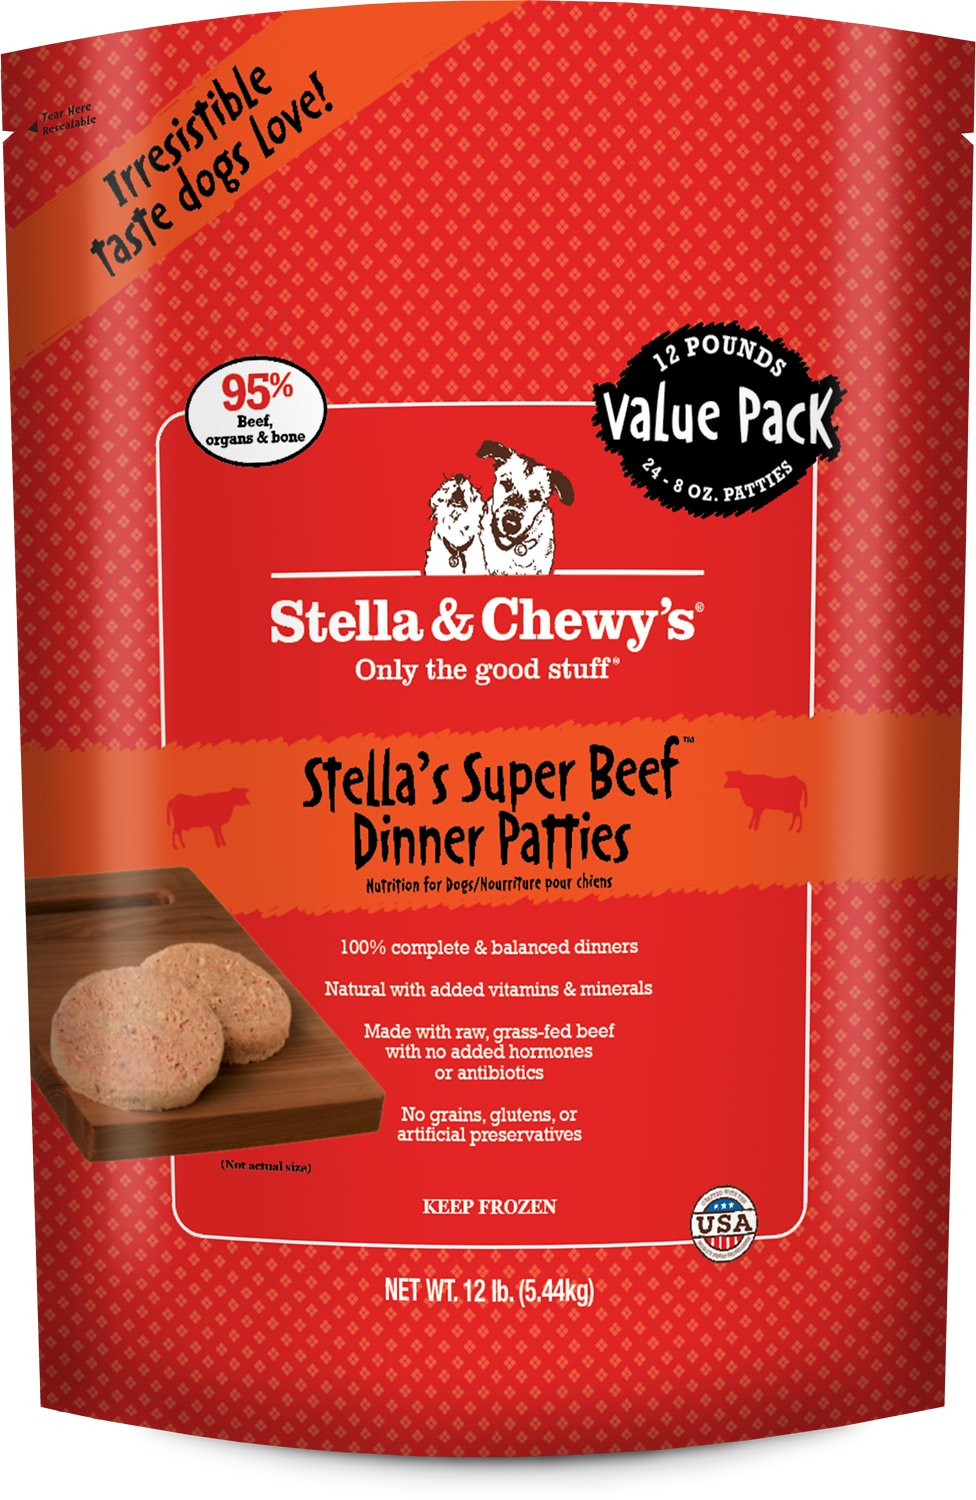 Stella & Chewy's Dog Frozen Super Beef Dinner Patties Frozen Dog Food, 12-lb